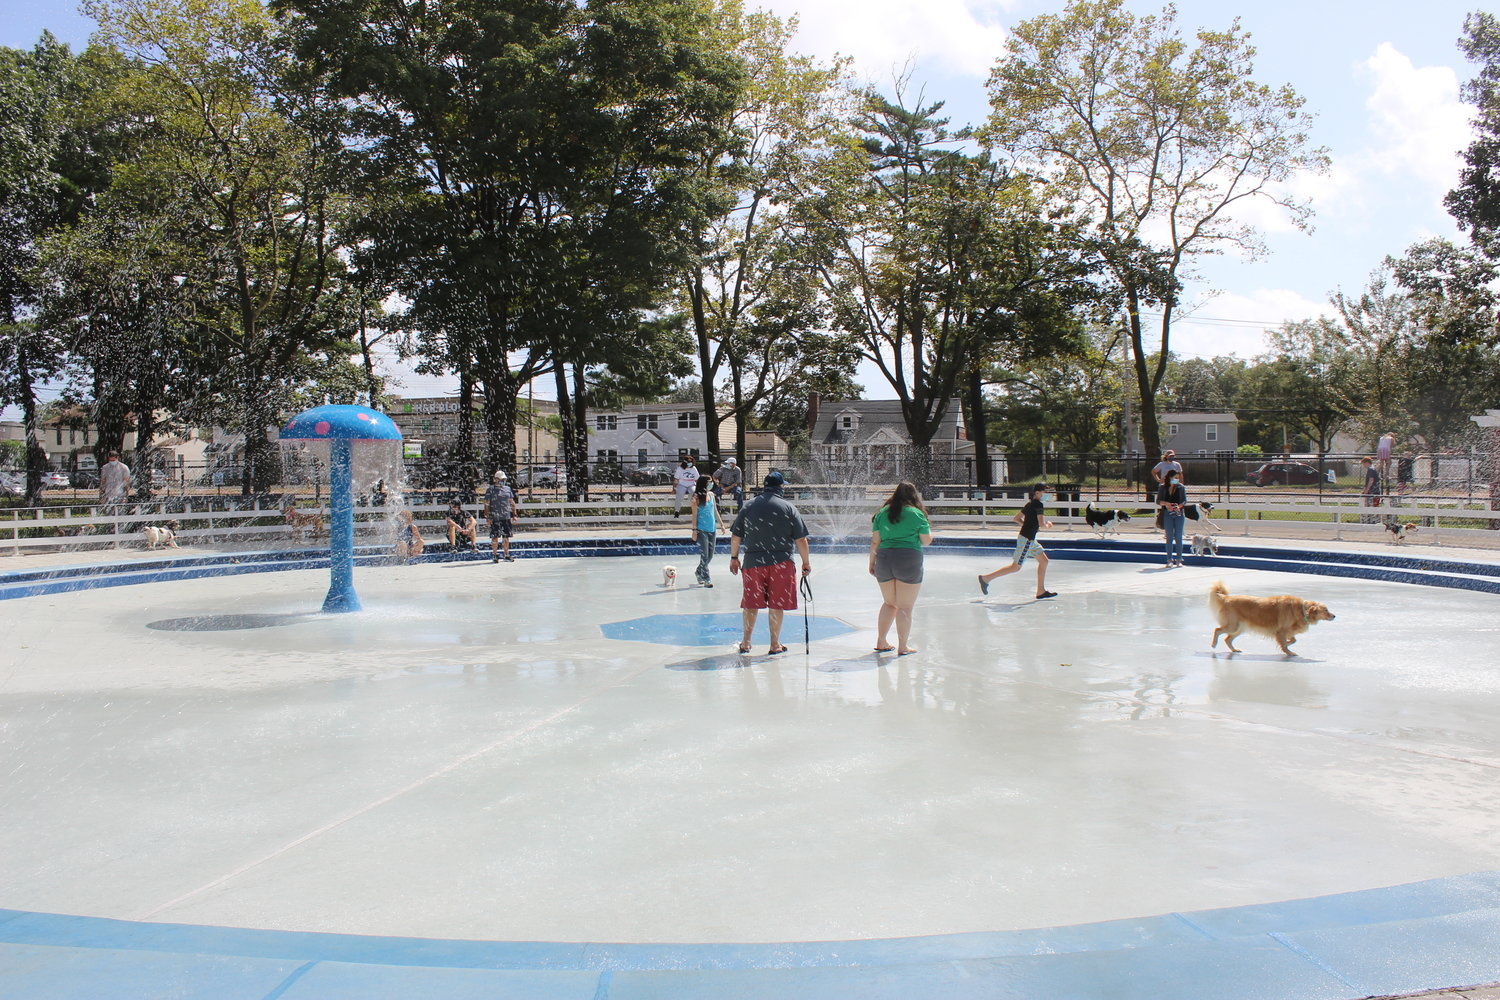 Dozens of dog owners visited the splash park in Eisenhower Park throughout the day.